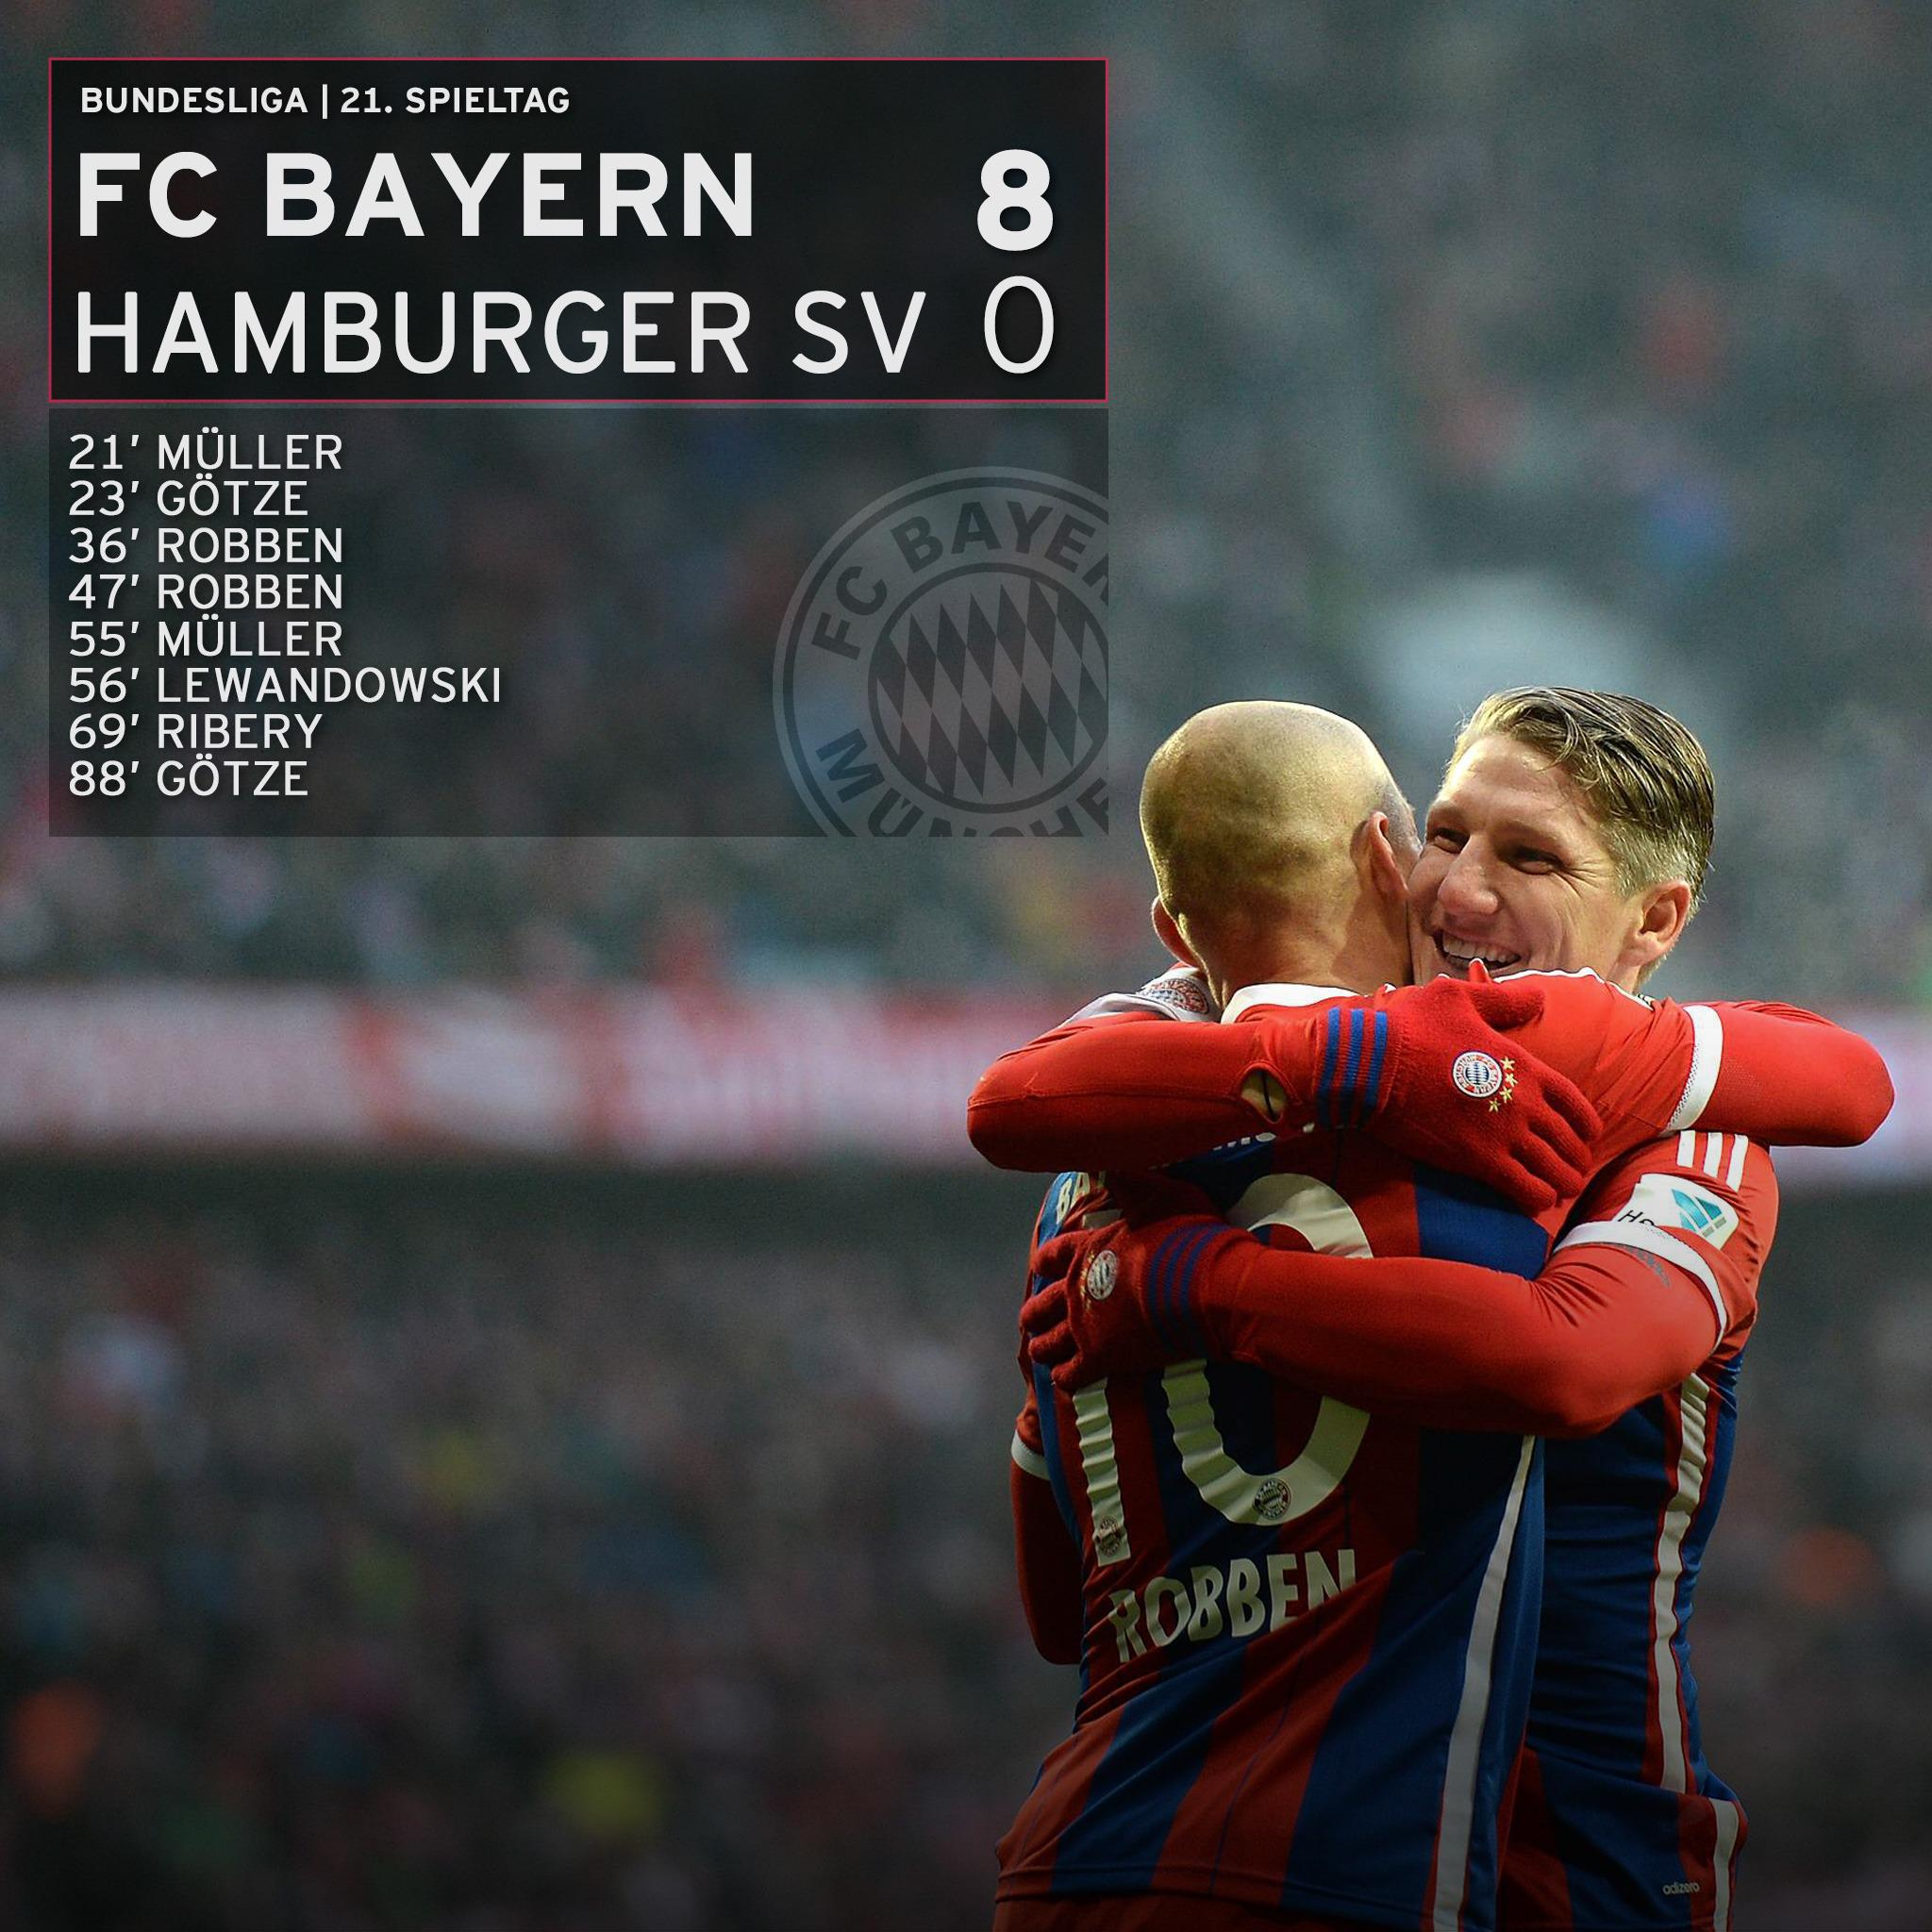 FULL TIME! A first home win of 2015 for #FCBayern, and WHAT A WIN! #FCBayernLive #FCBHSV 8-0 http://t.co/eCr4TvM3my